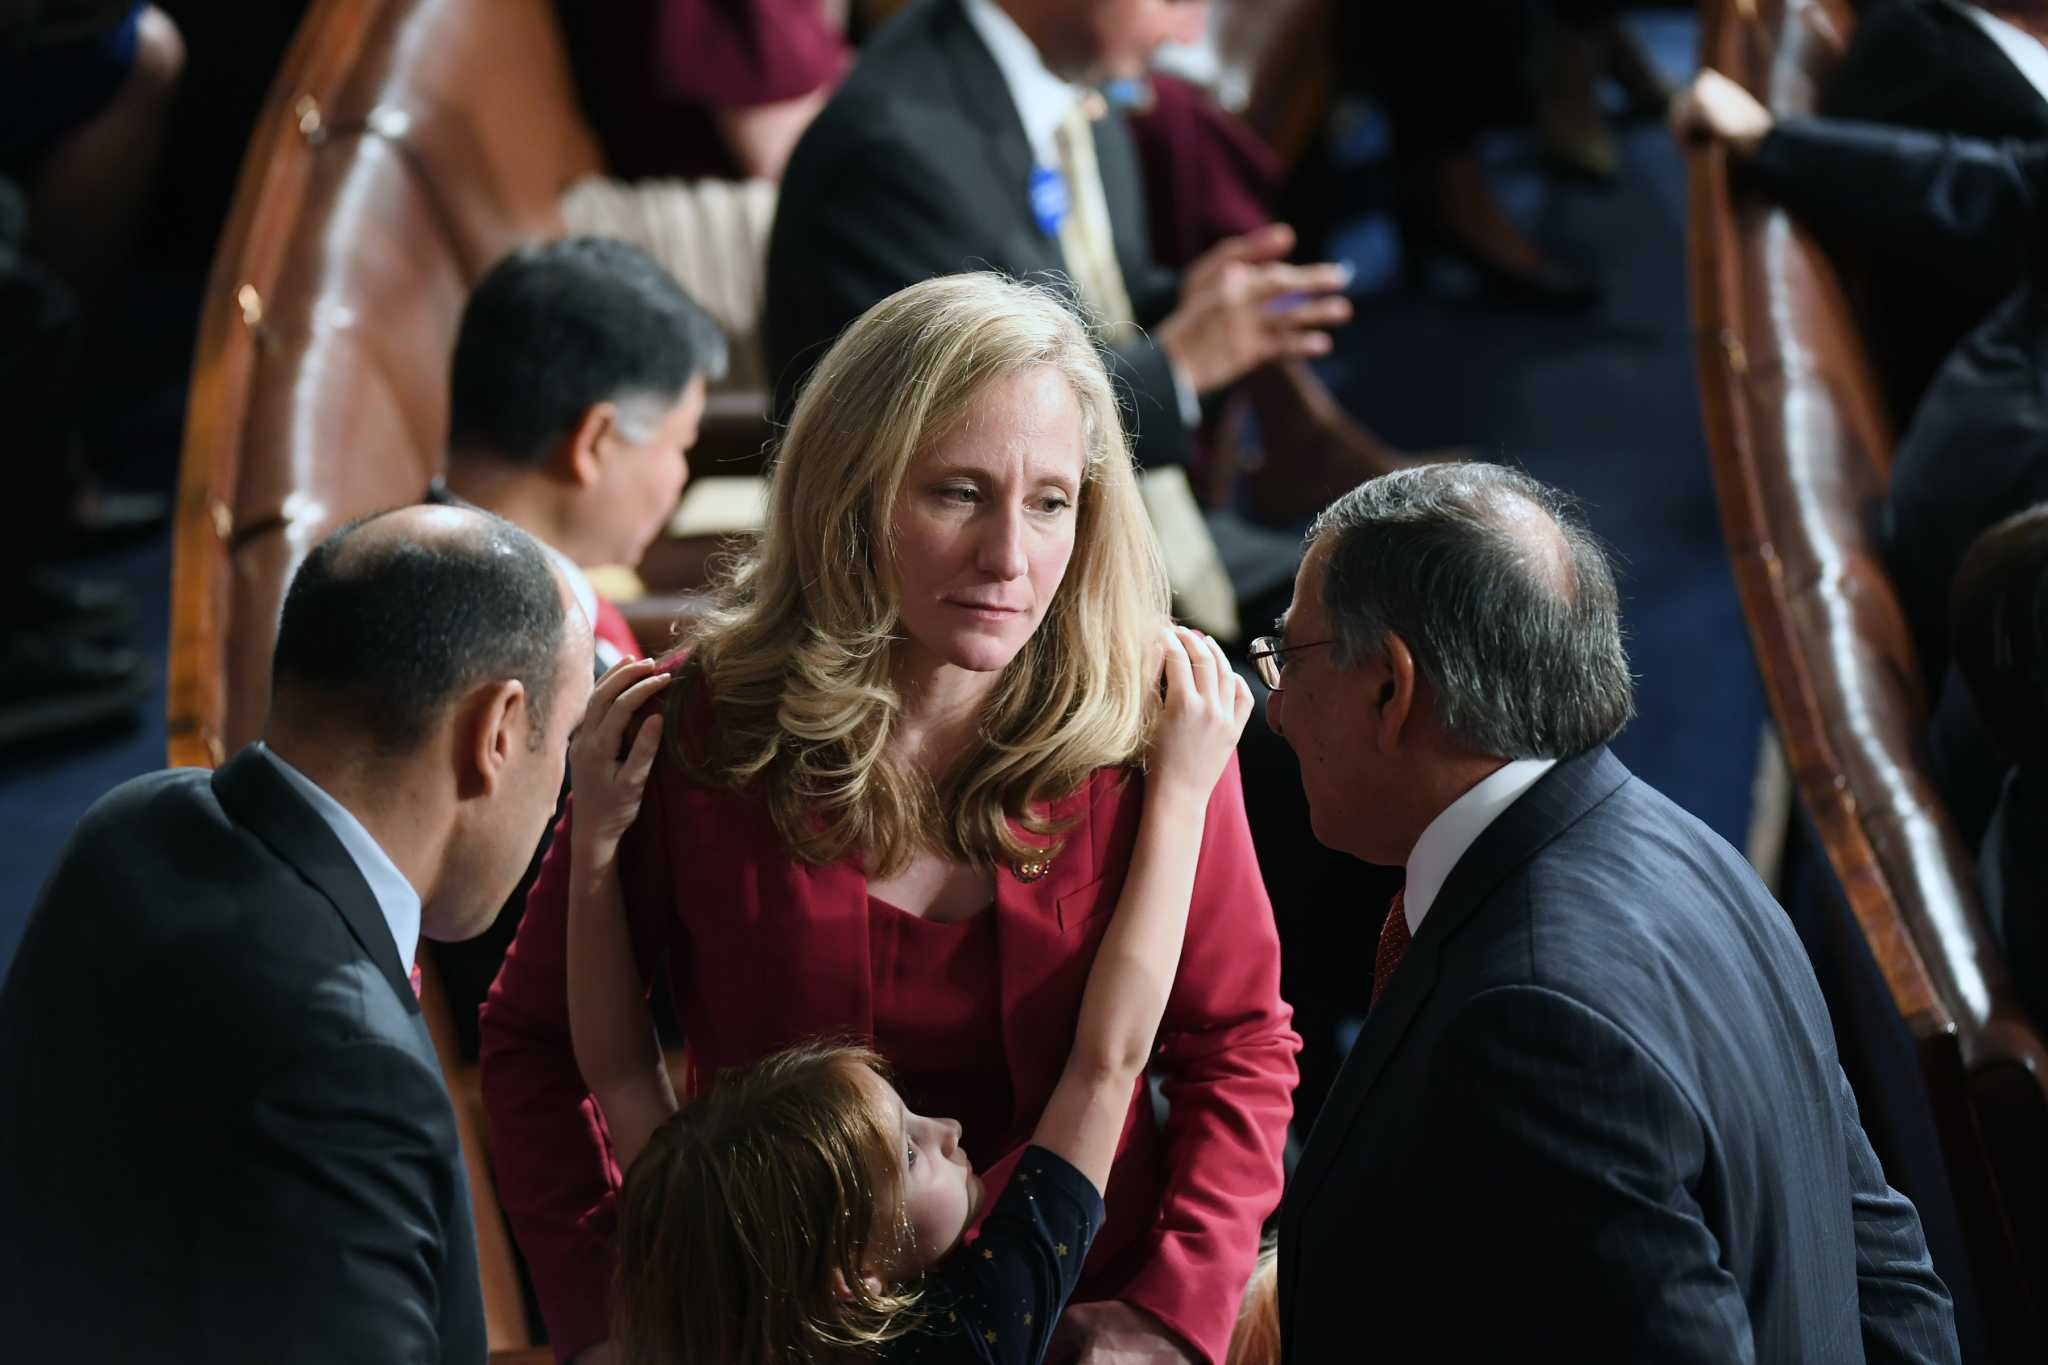 After a life of the gun, Abigail Spanberger wants control